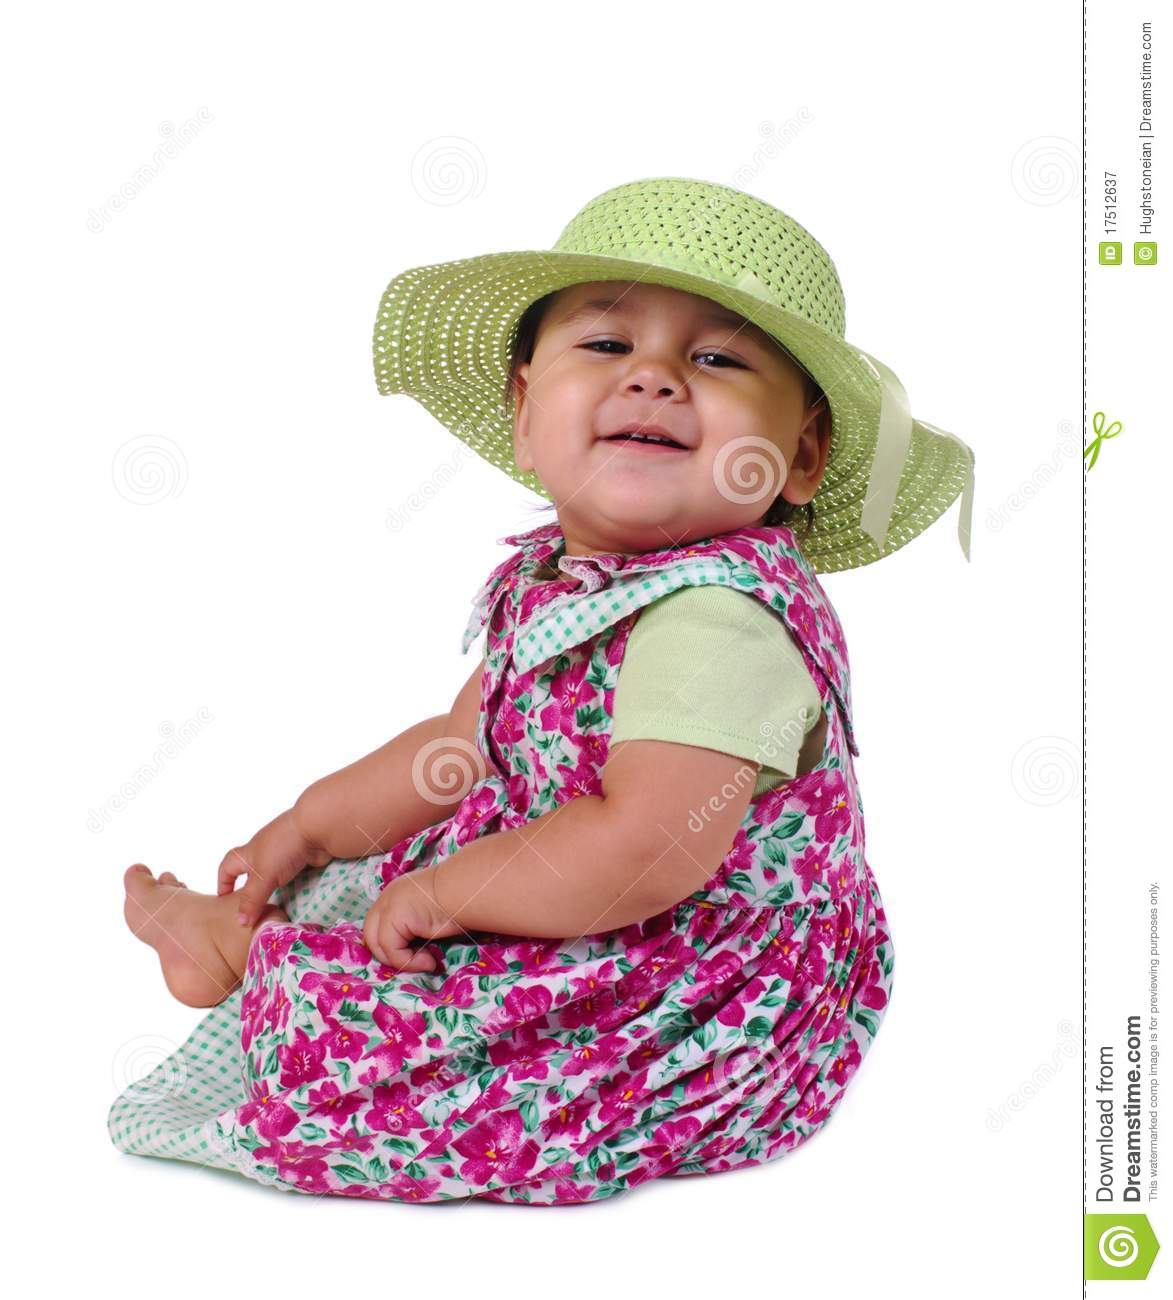 Baby Girl In Summer Dress And Hat Stock Image - Image of infant ... caa6aca6f22